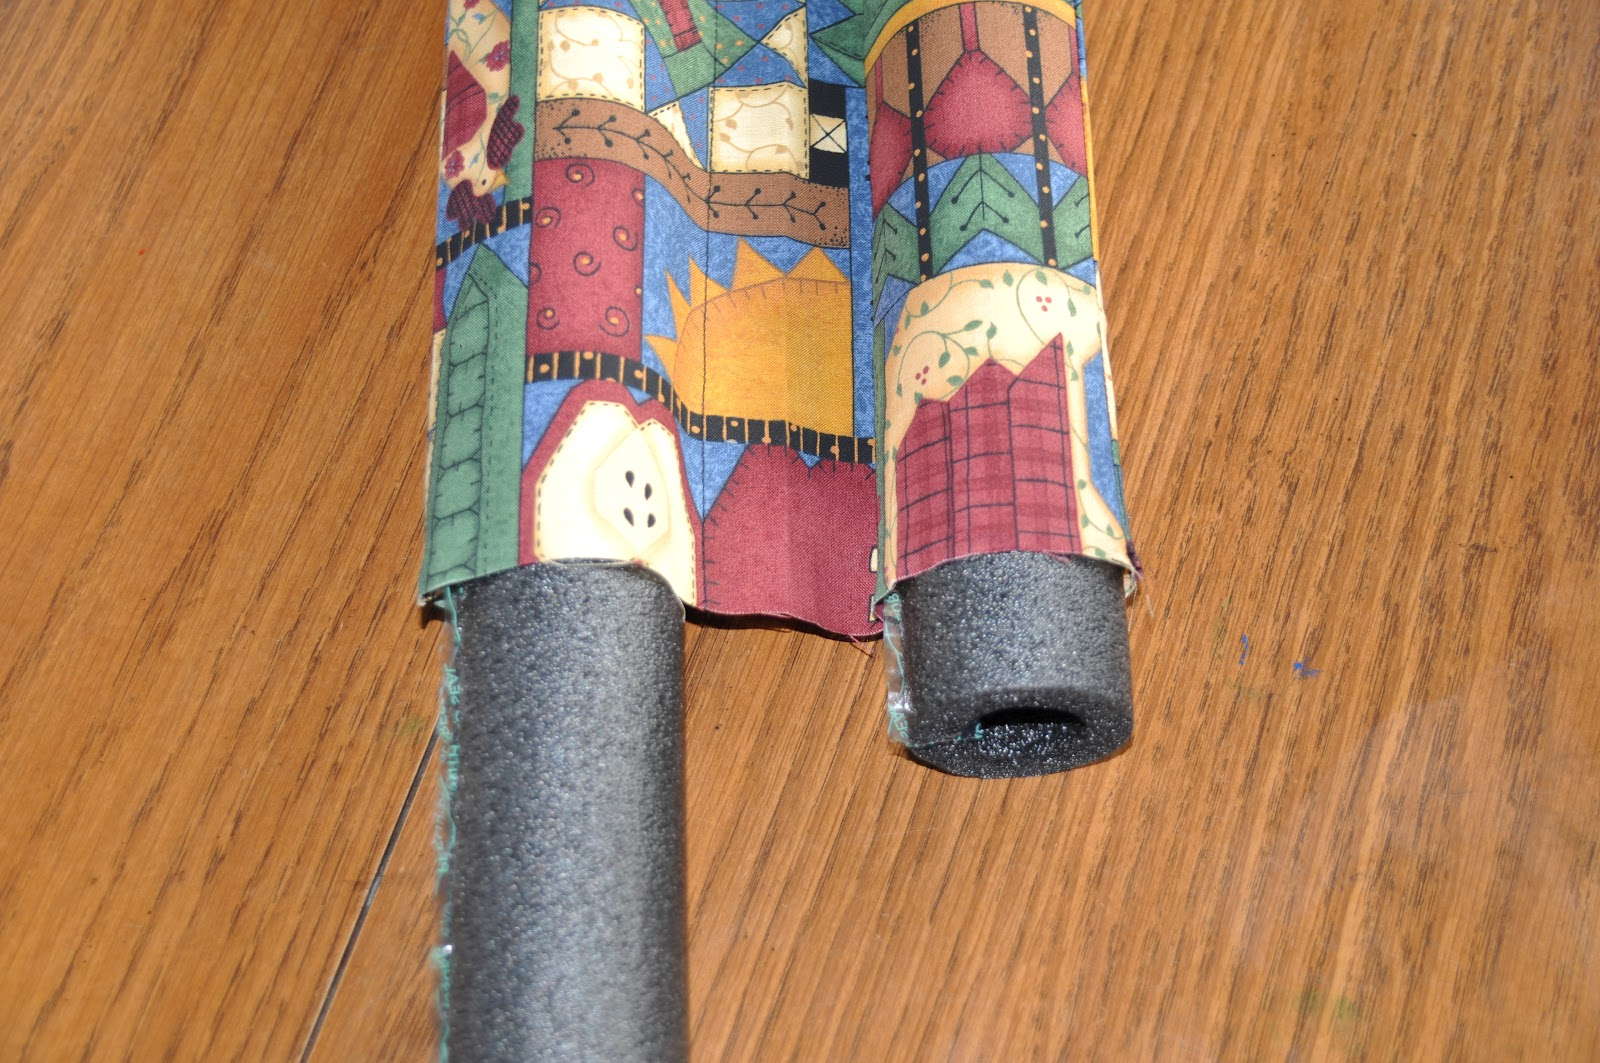 Save double sided draft stopper to get e-mail alerts and updates on your eBay Feed. + Items in search results. SPONSORED. Twin Door Doorstops Draft Stopper, Double Sided Weather Stripping Under For Room See more like this. 2 Pack Double Sided Dual Draft Blocker Wind Guard Breeze Stopper 36